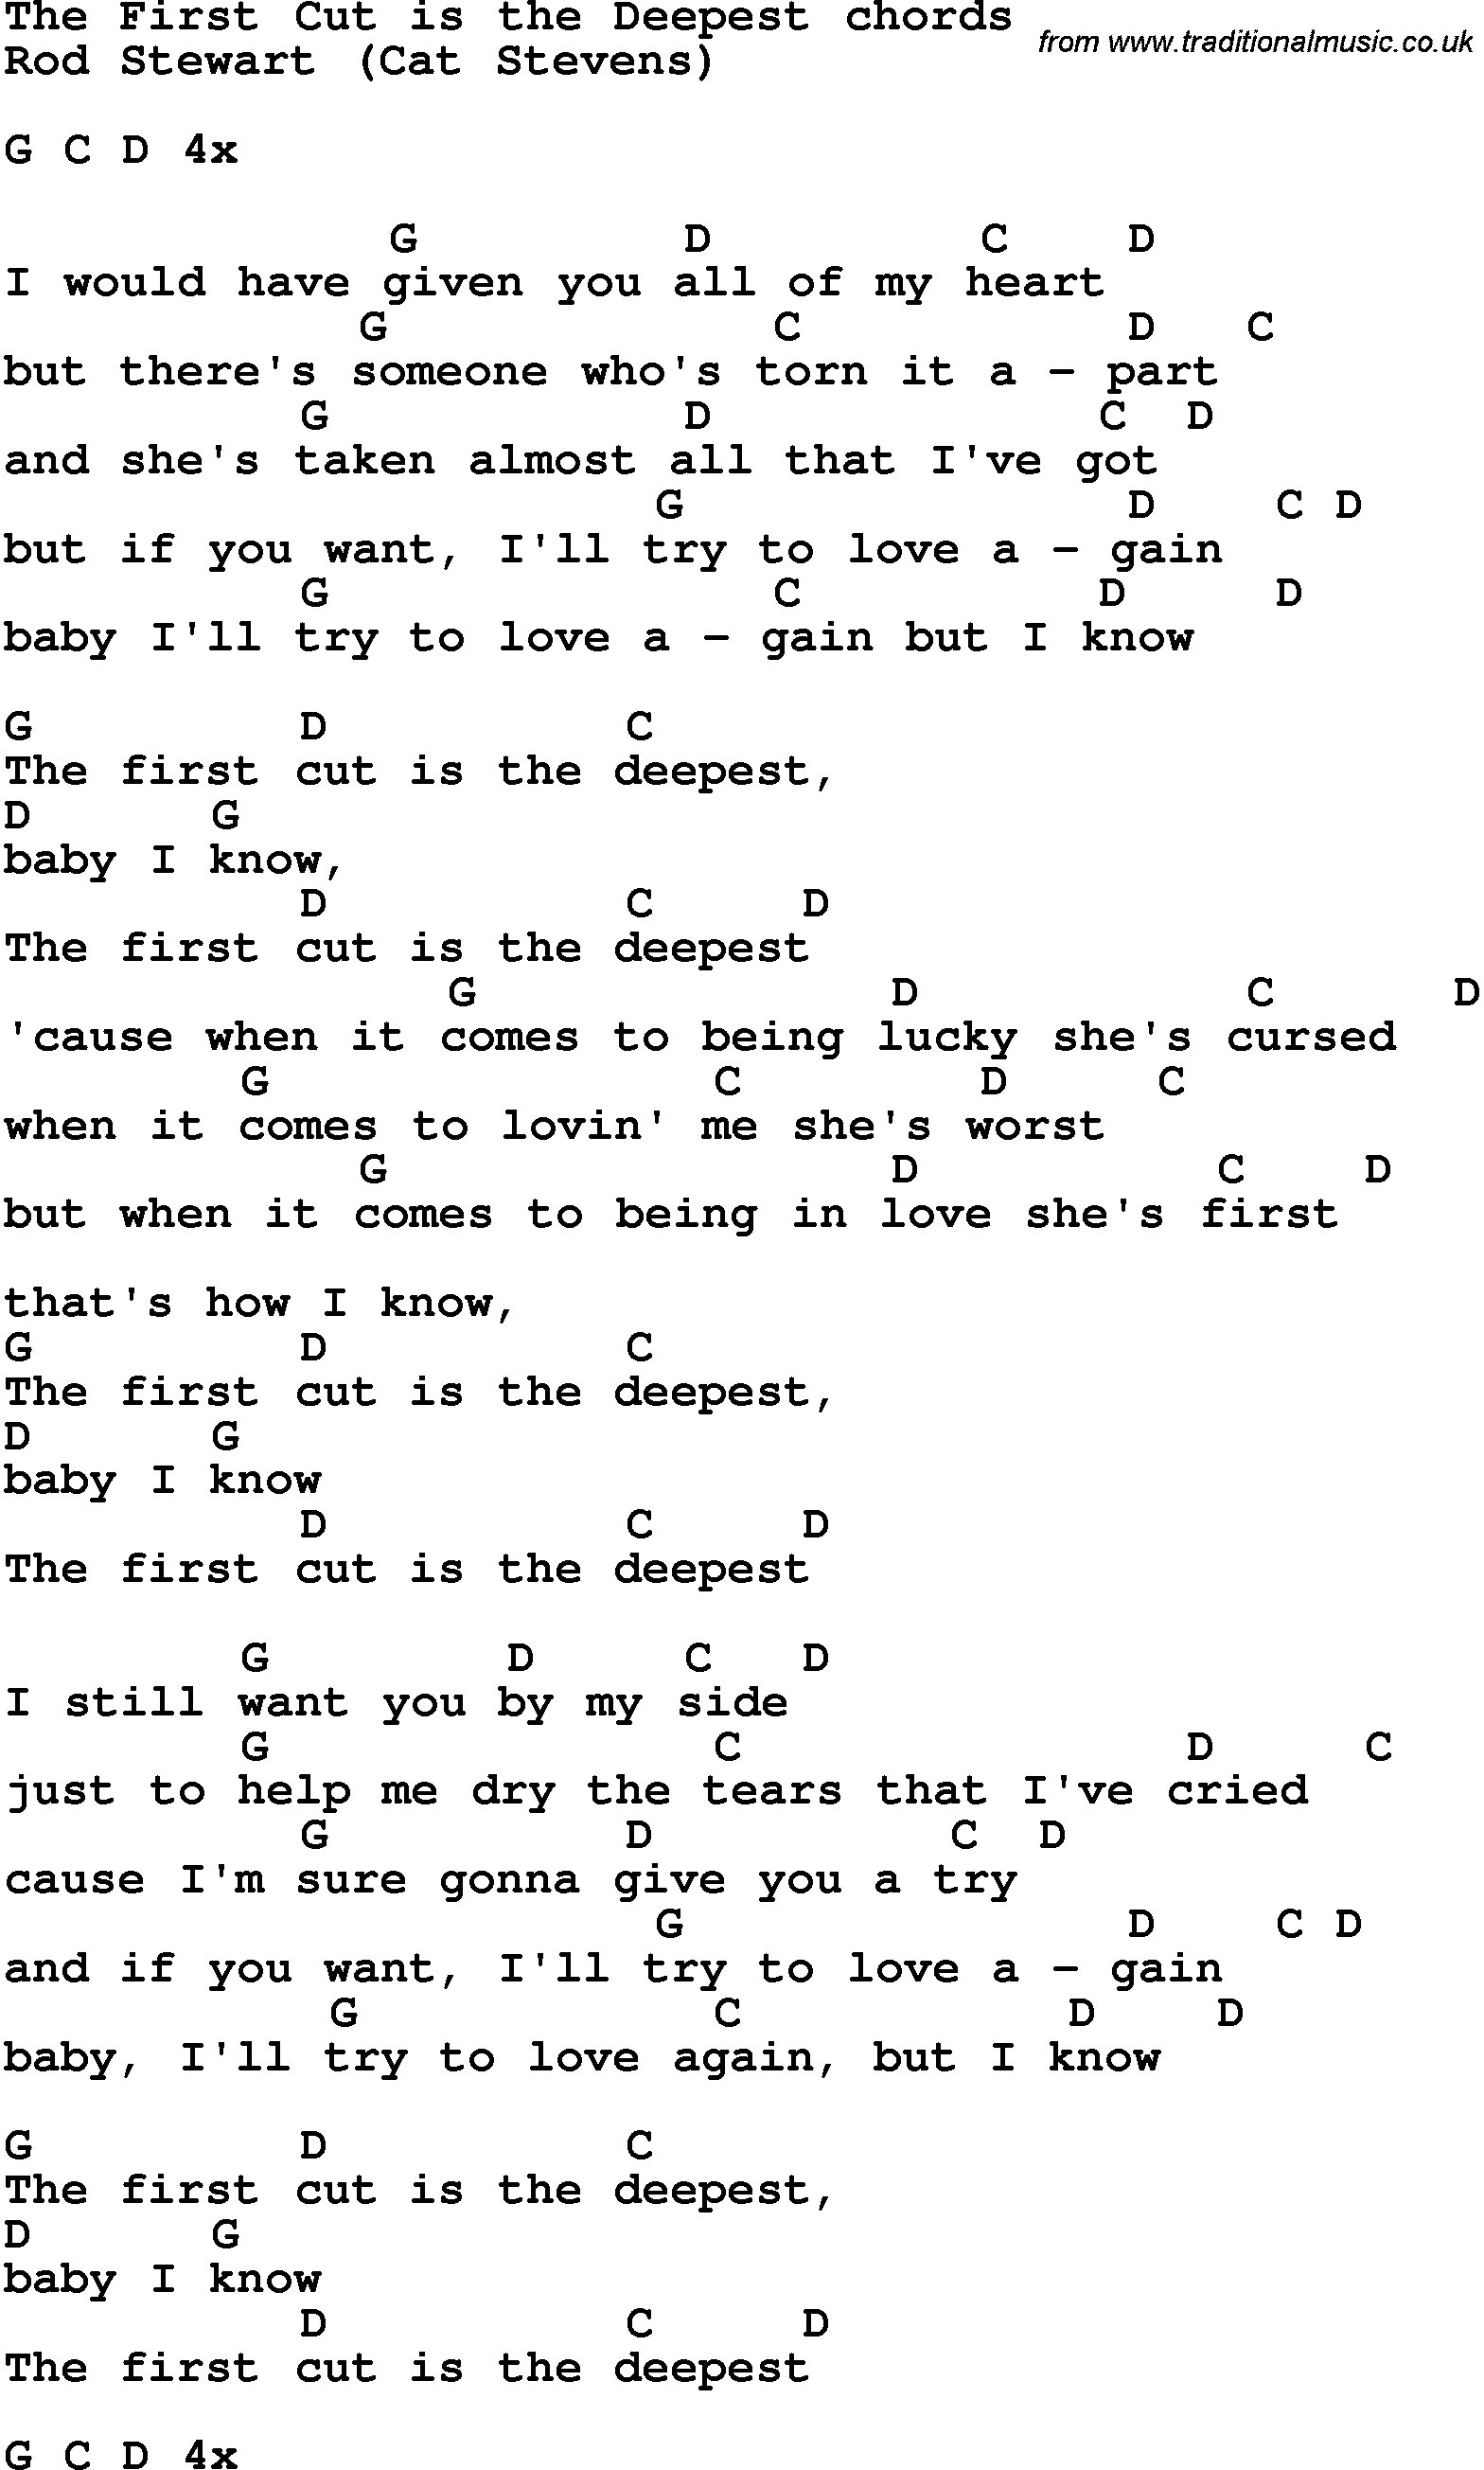 Lyrics - Wikipedia